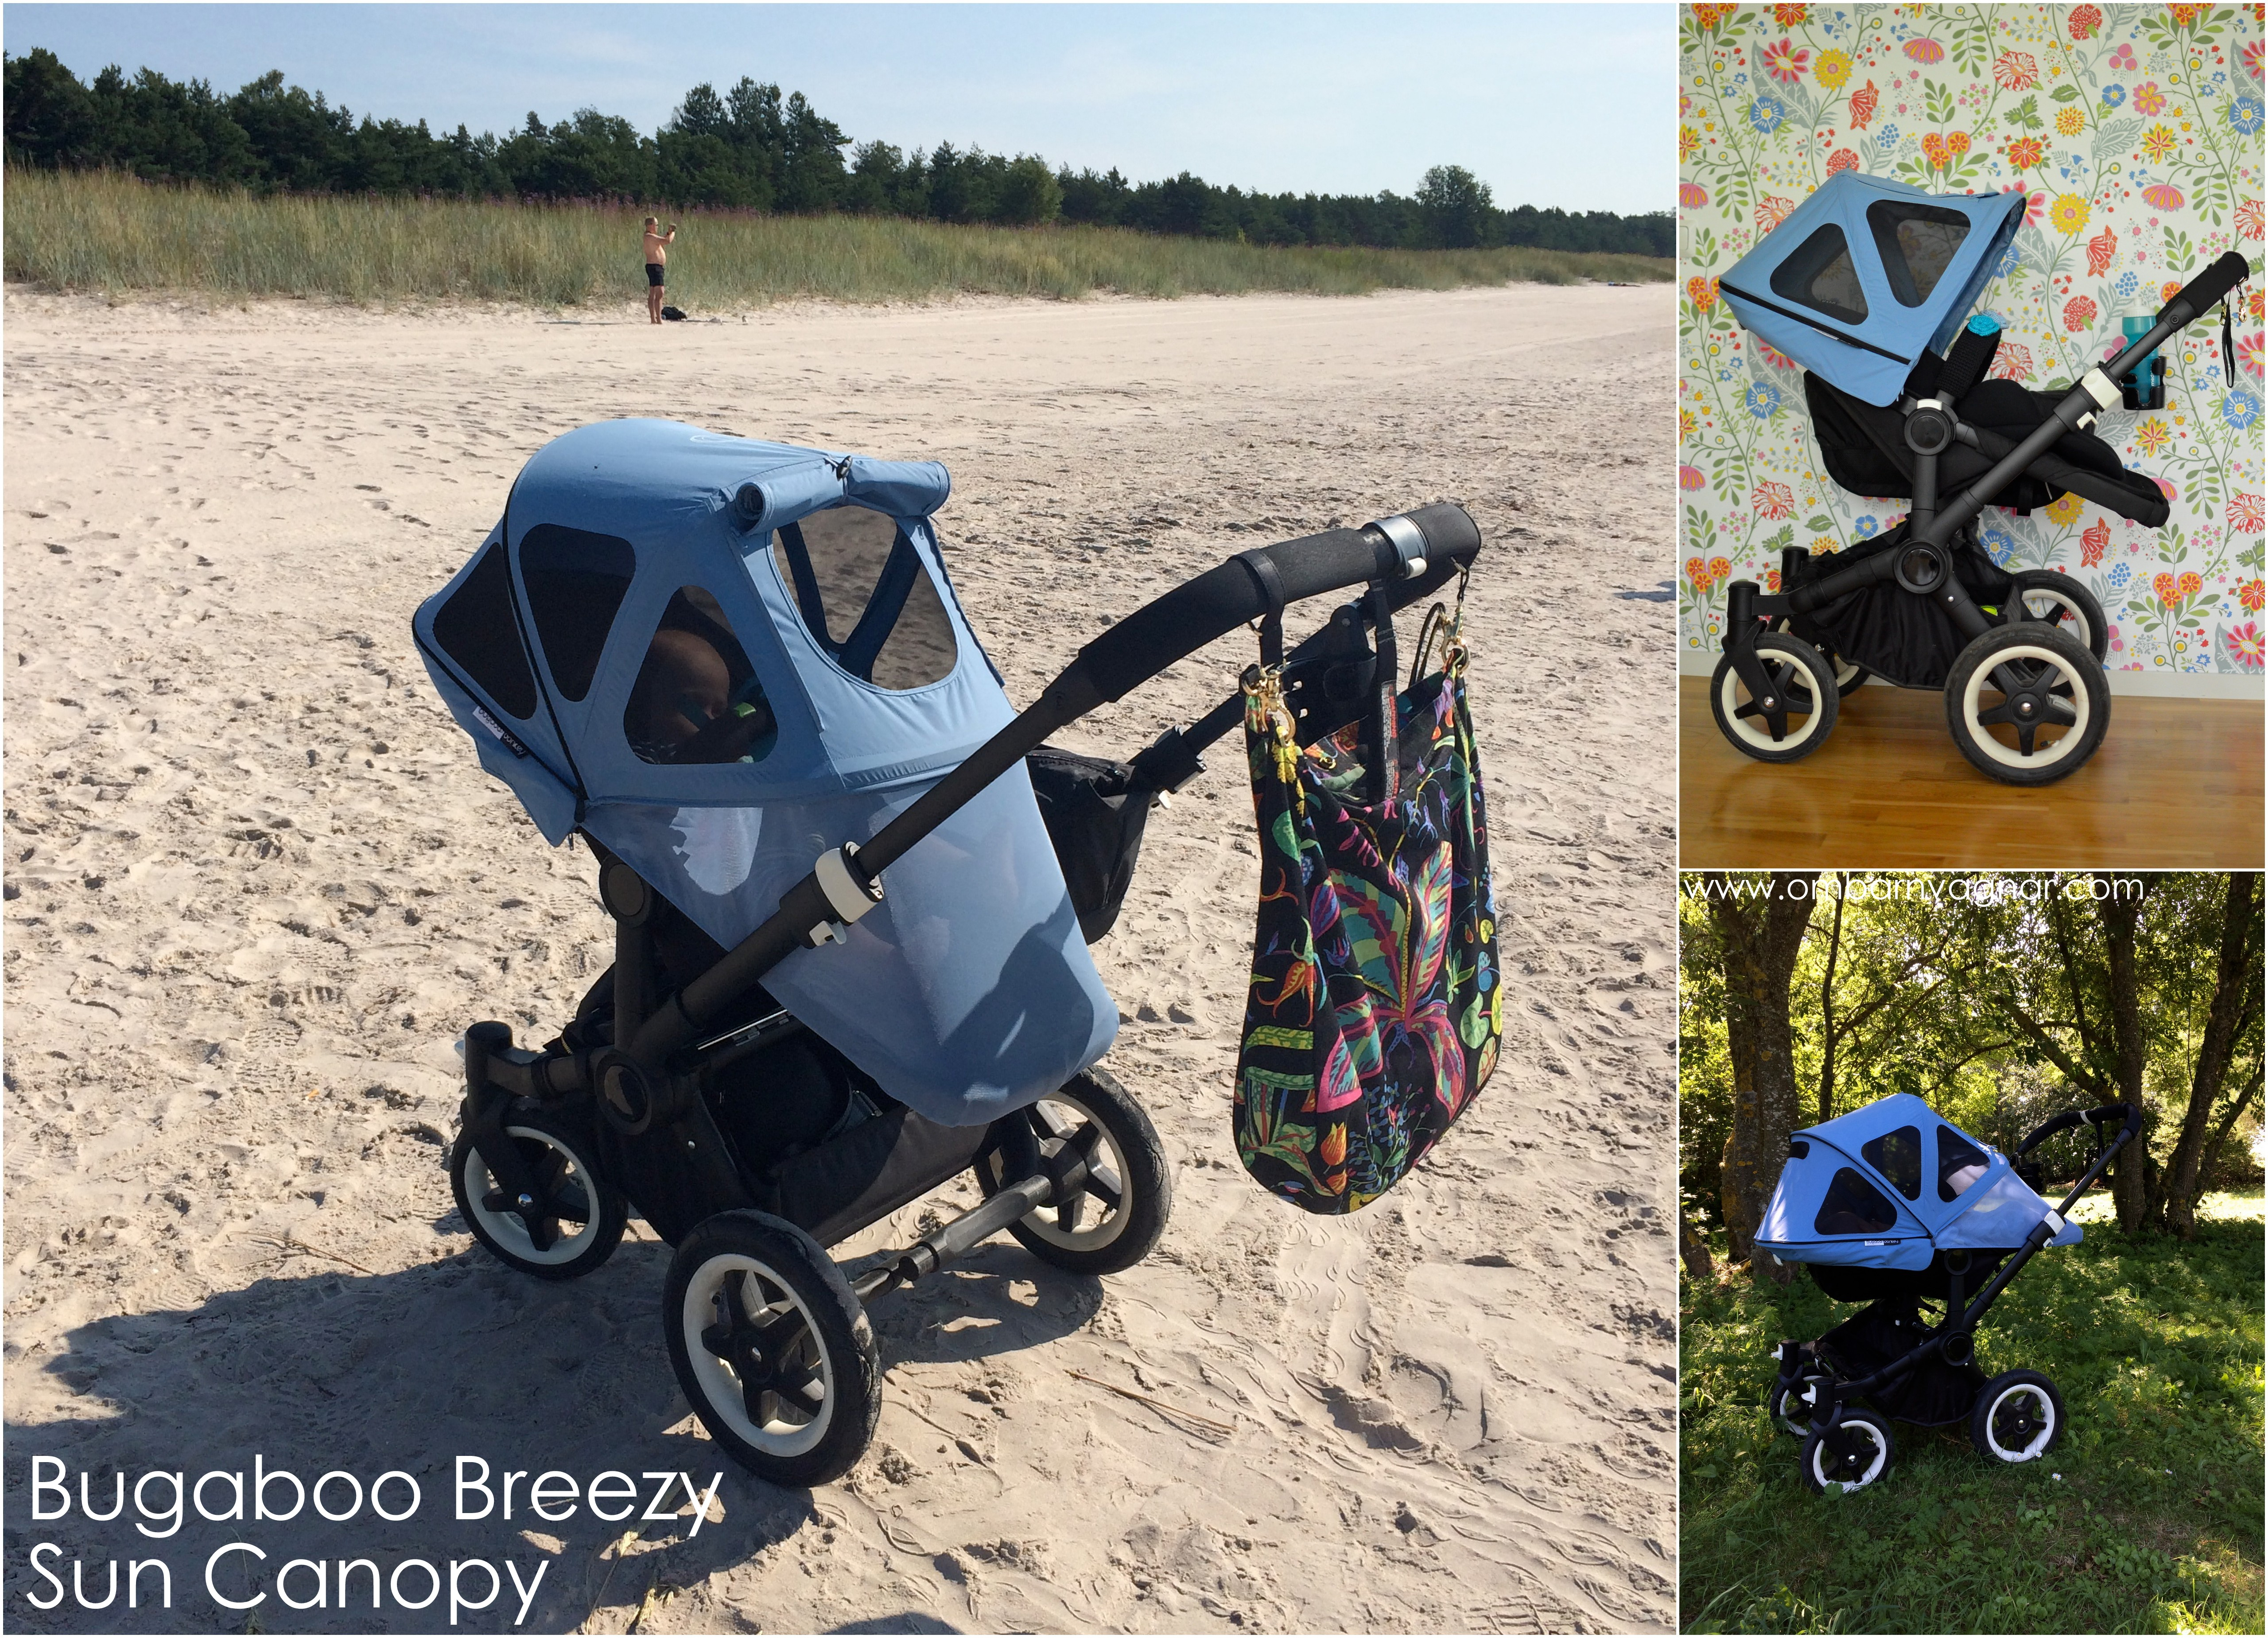 & Minirecension av Bugaboo Breezy Sun Canopy